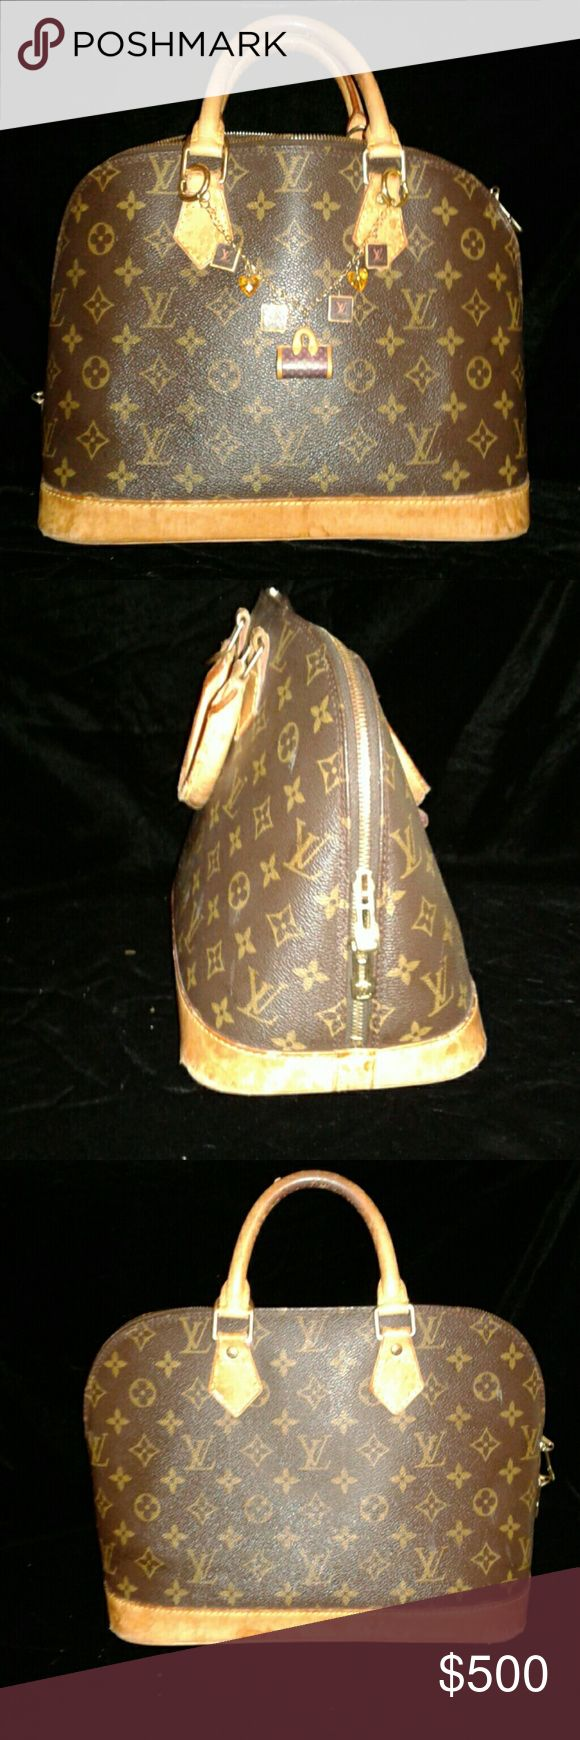 Authentic LOUIS VUITTON ALMA BAG3 Authentic Louis vuitton Alma bag in good condition with some wear to the straps and bottom 2 corners.Very clean inside and out. Louis Vuitton Bags